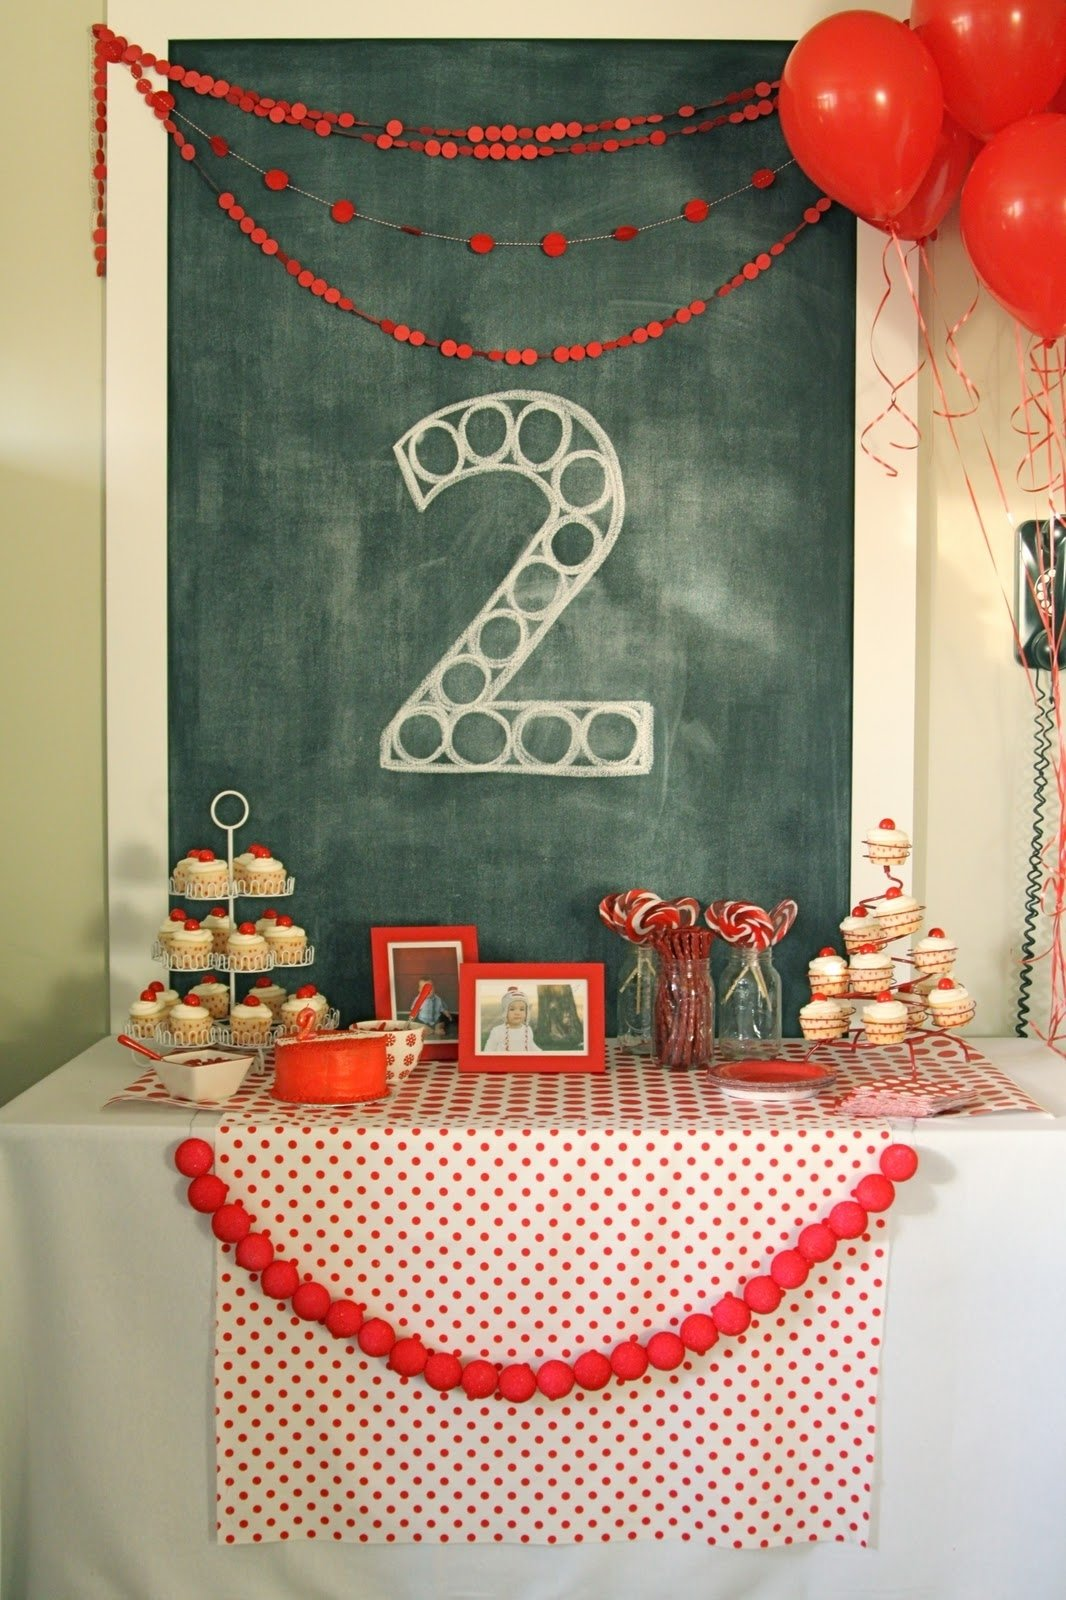 10 Nice Birthday Ideas For 2 Year Old Daughter red ball party levis second birthday the macs 2021